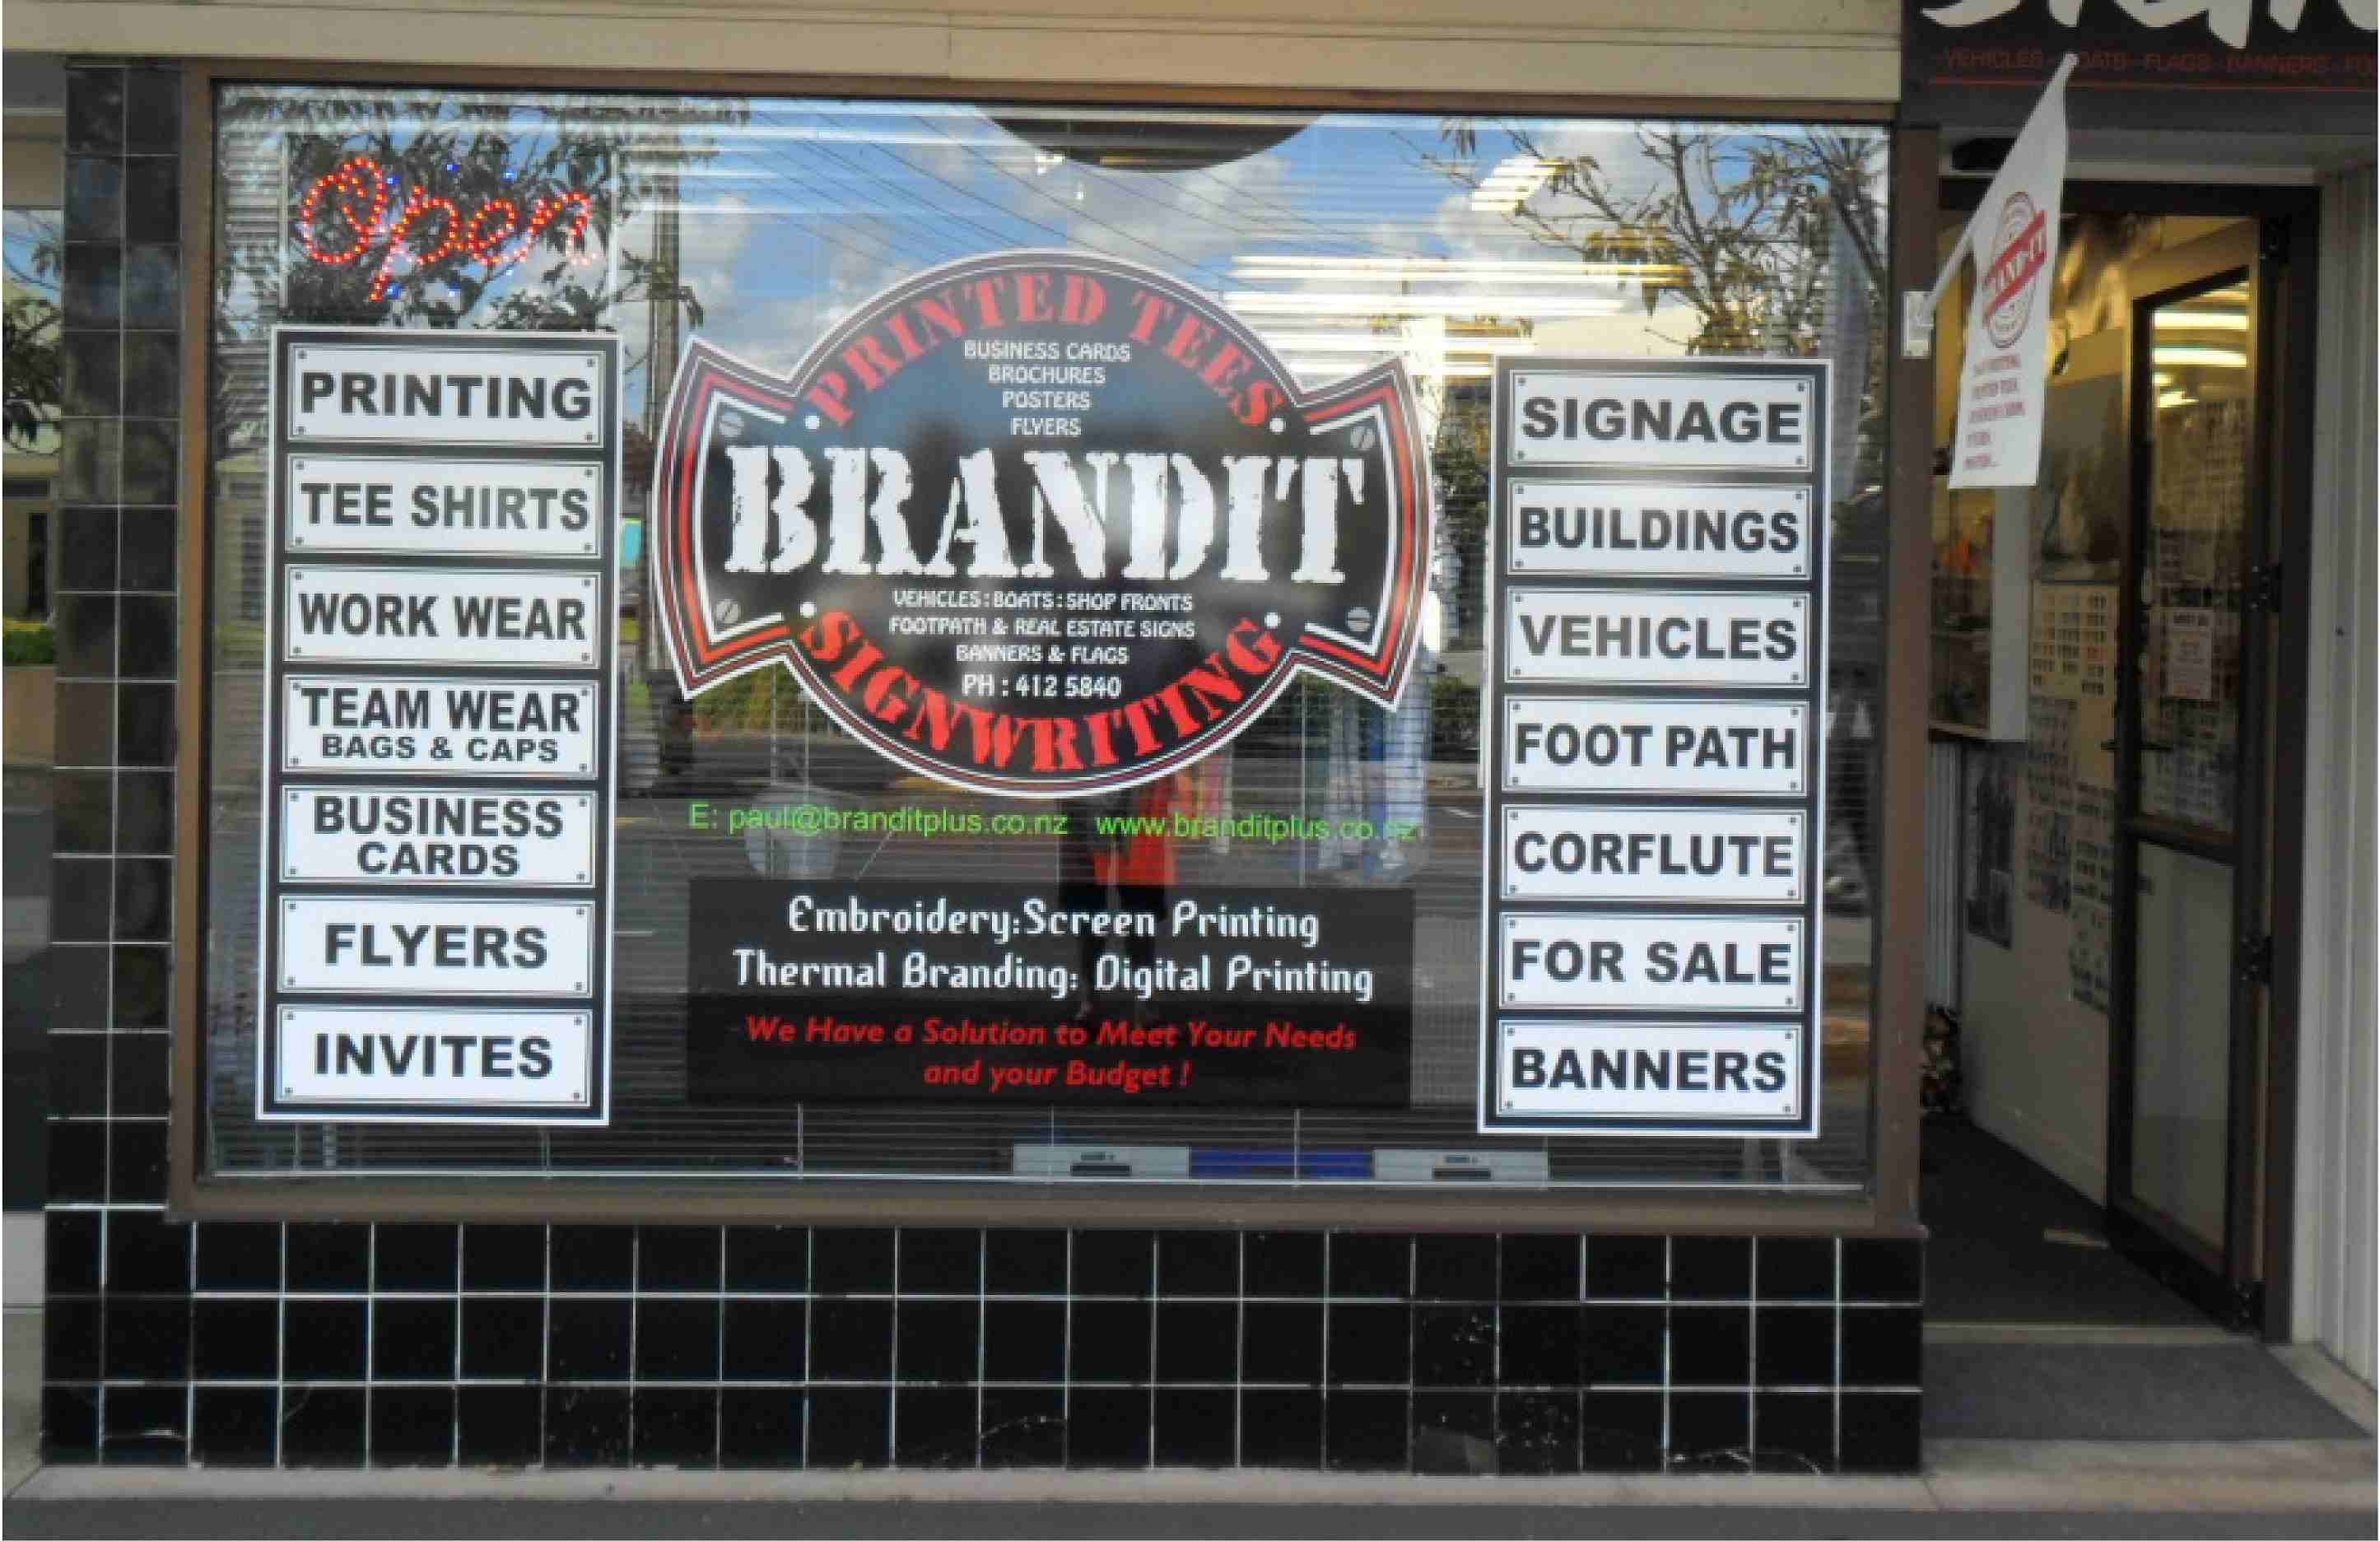 brandit plus ltd, 16 Matua road, Huapai, AUCKLAND, 0810, NEW ZEALAND